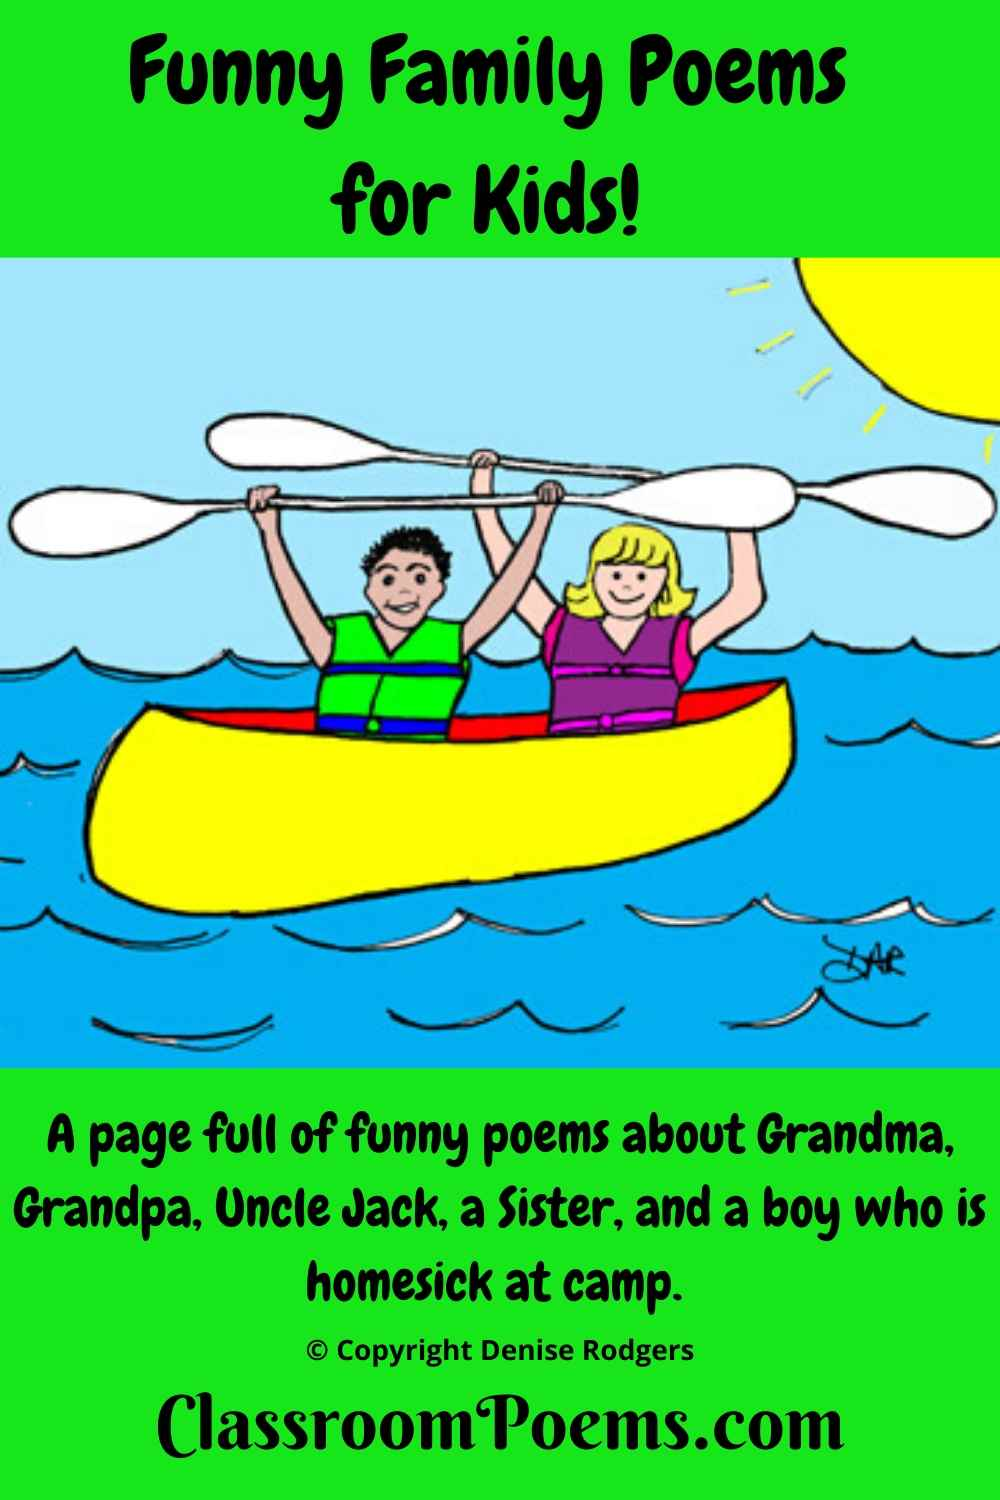 HOMESICK at summer camp, a funny family poem by Denise Rodgers at ClassroomPoems.com.